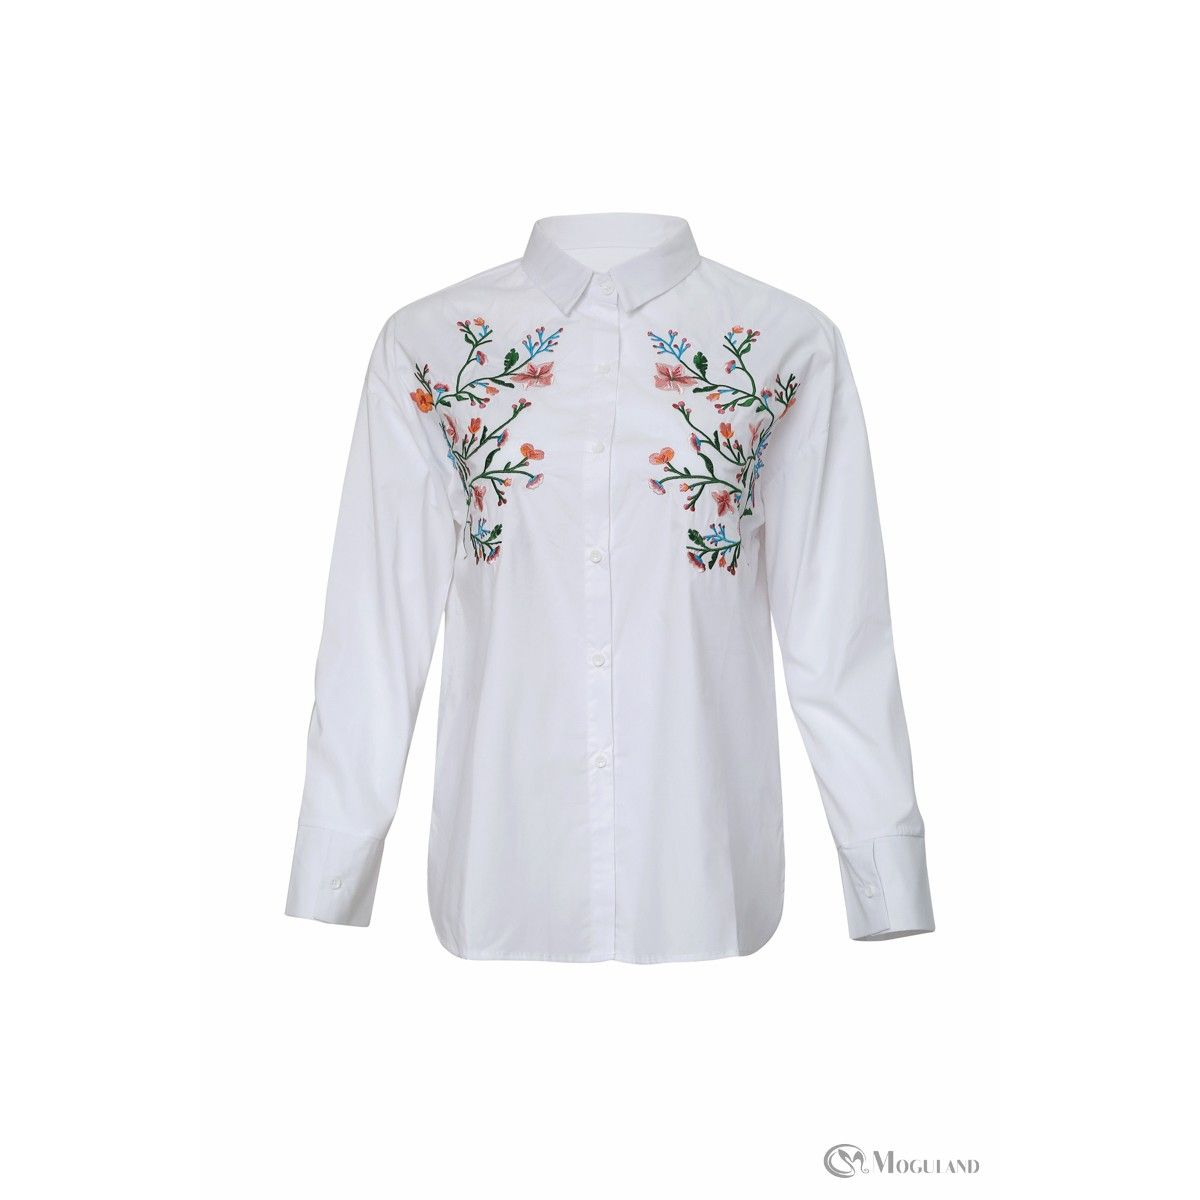 embroidered shirts womens women clothing manufacturers